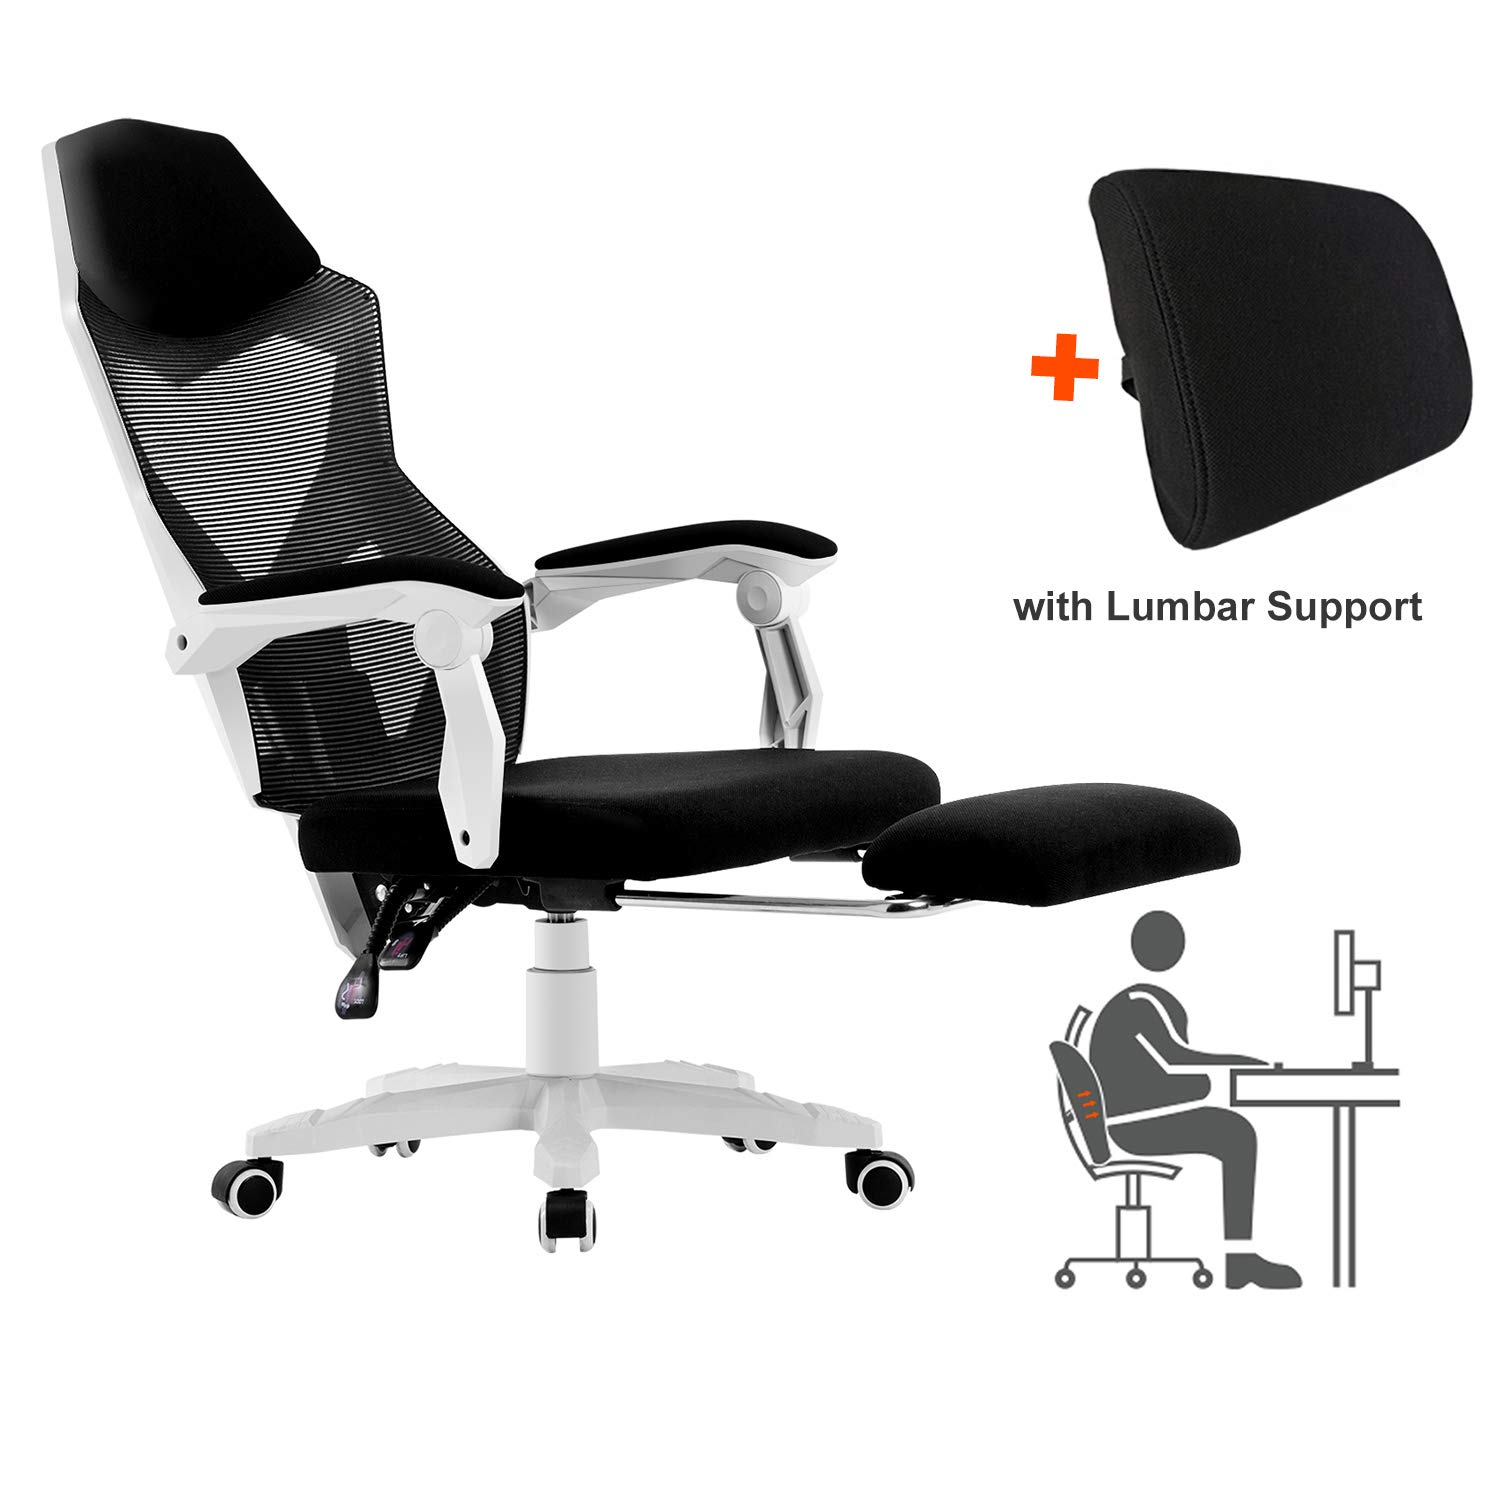 HOMEFUN Ergonomic Office Chair, High Back Adjustable Mesh Recliner Chair with Footrest, Desk Task Chair with Armrests White and Lumbar Support